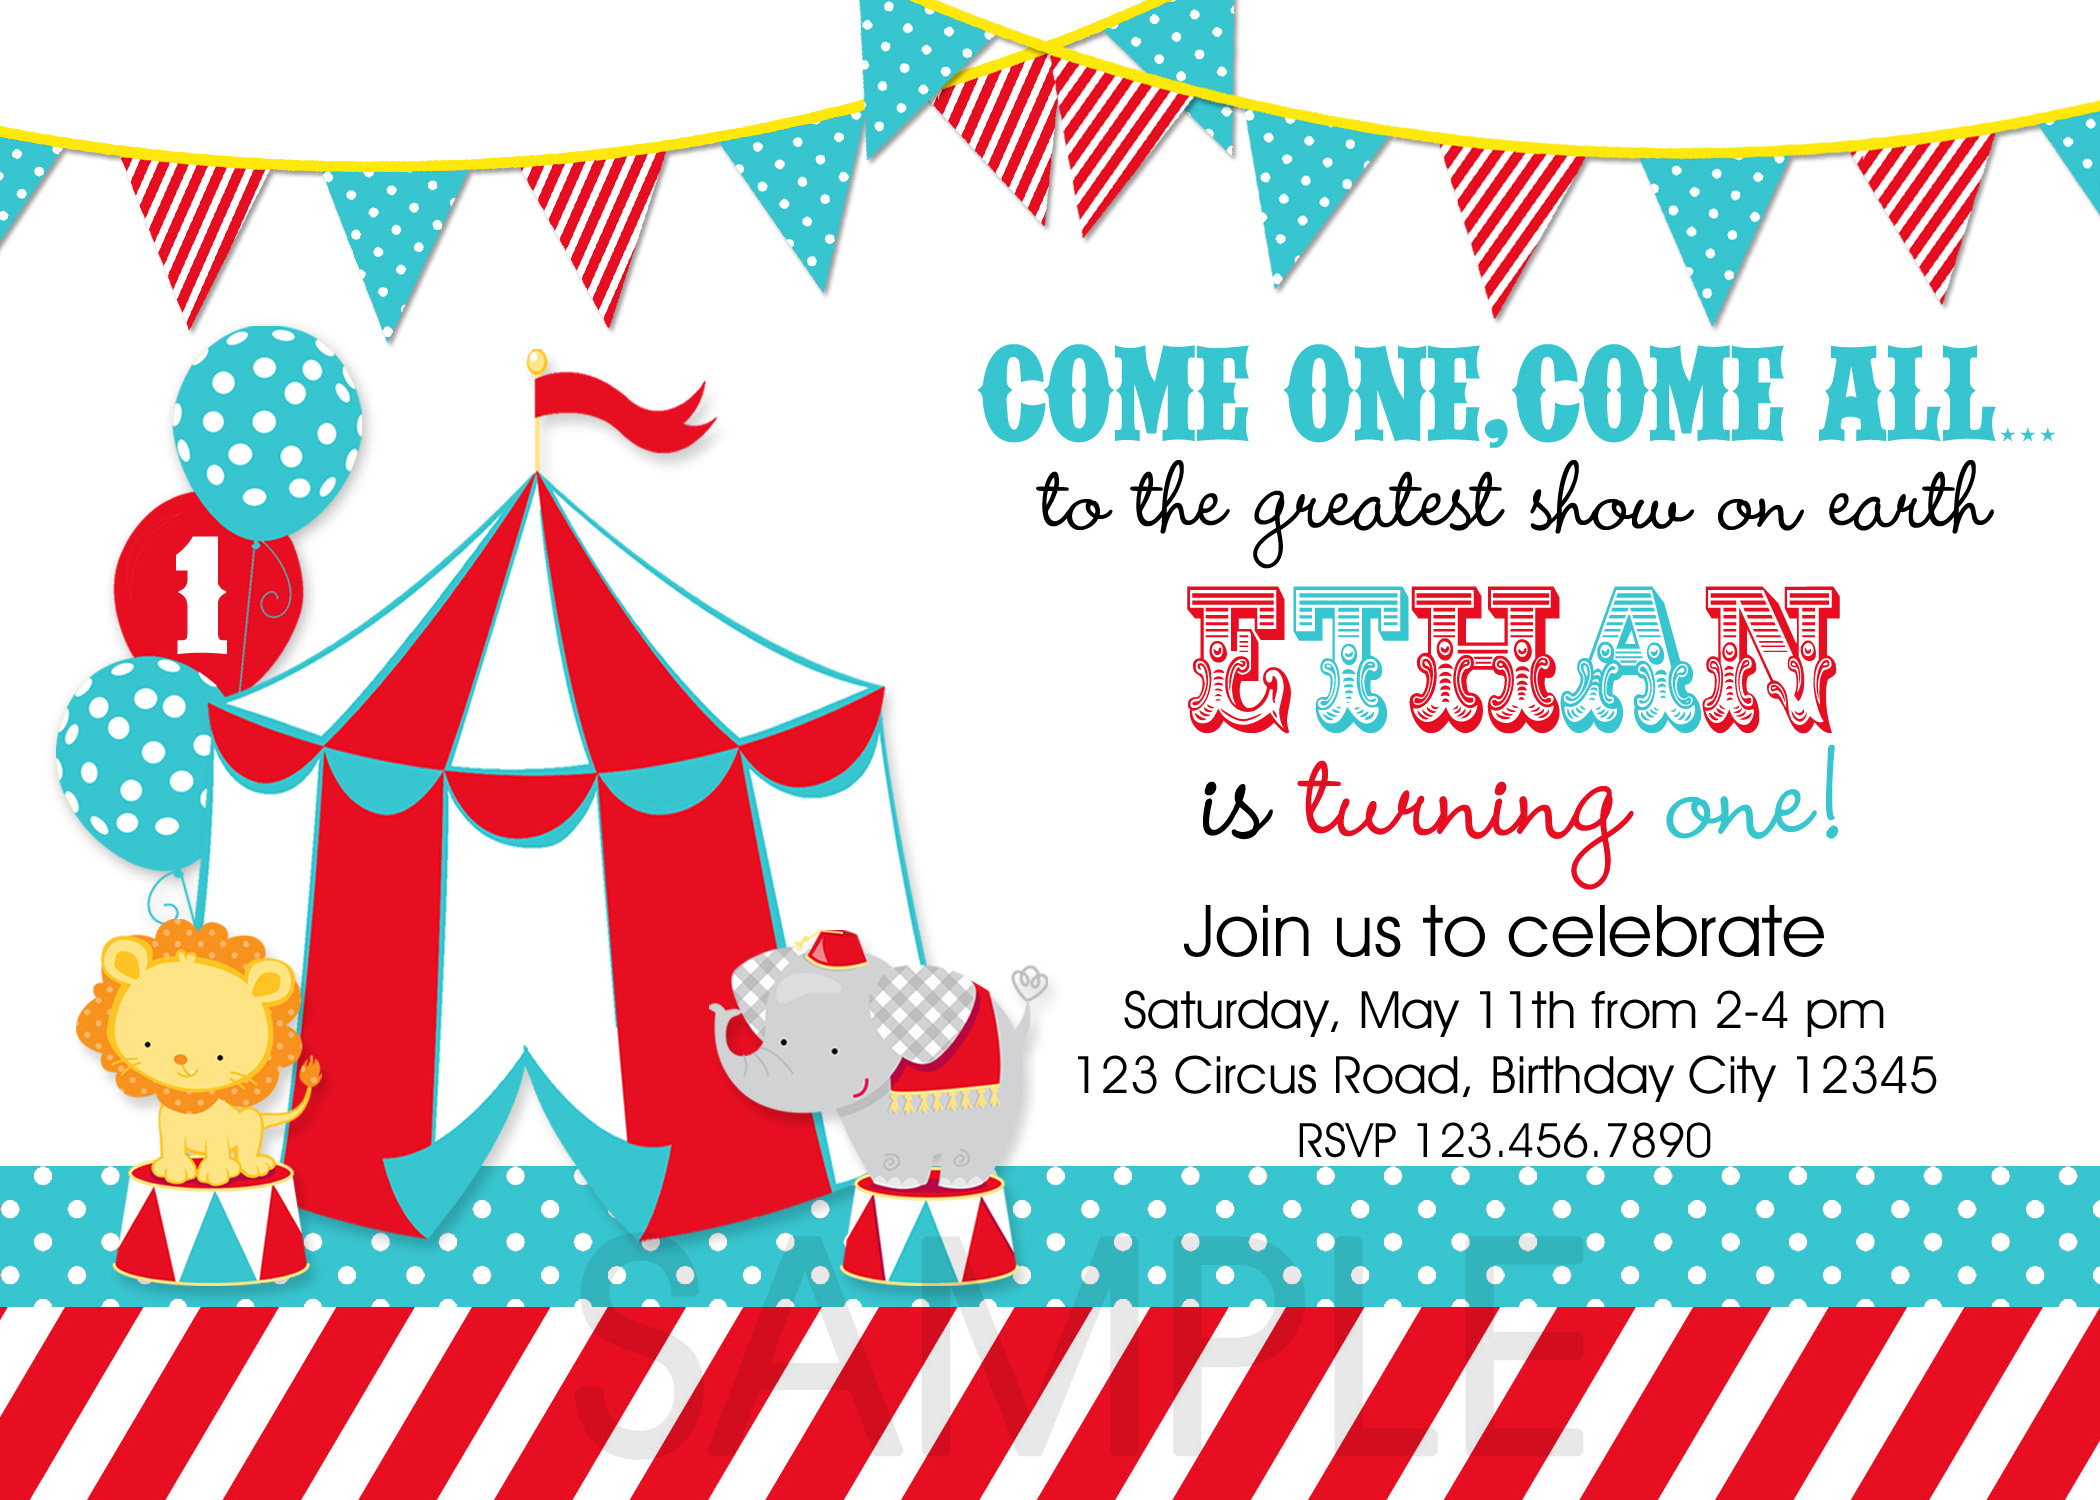 carnival birthday invitation template free ; circus-party-invitations-template-3zcfy9xw